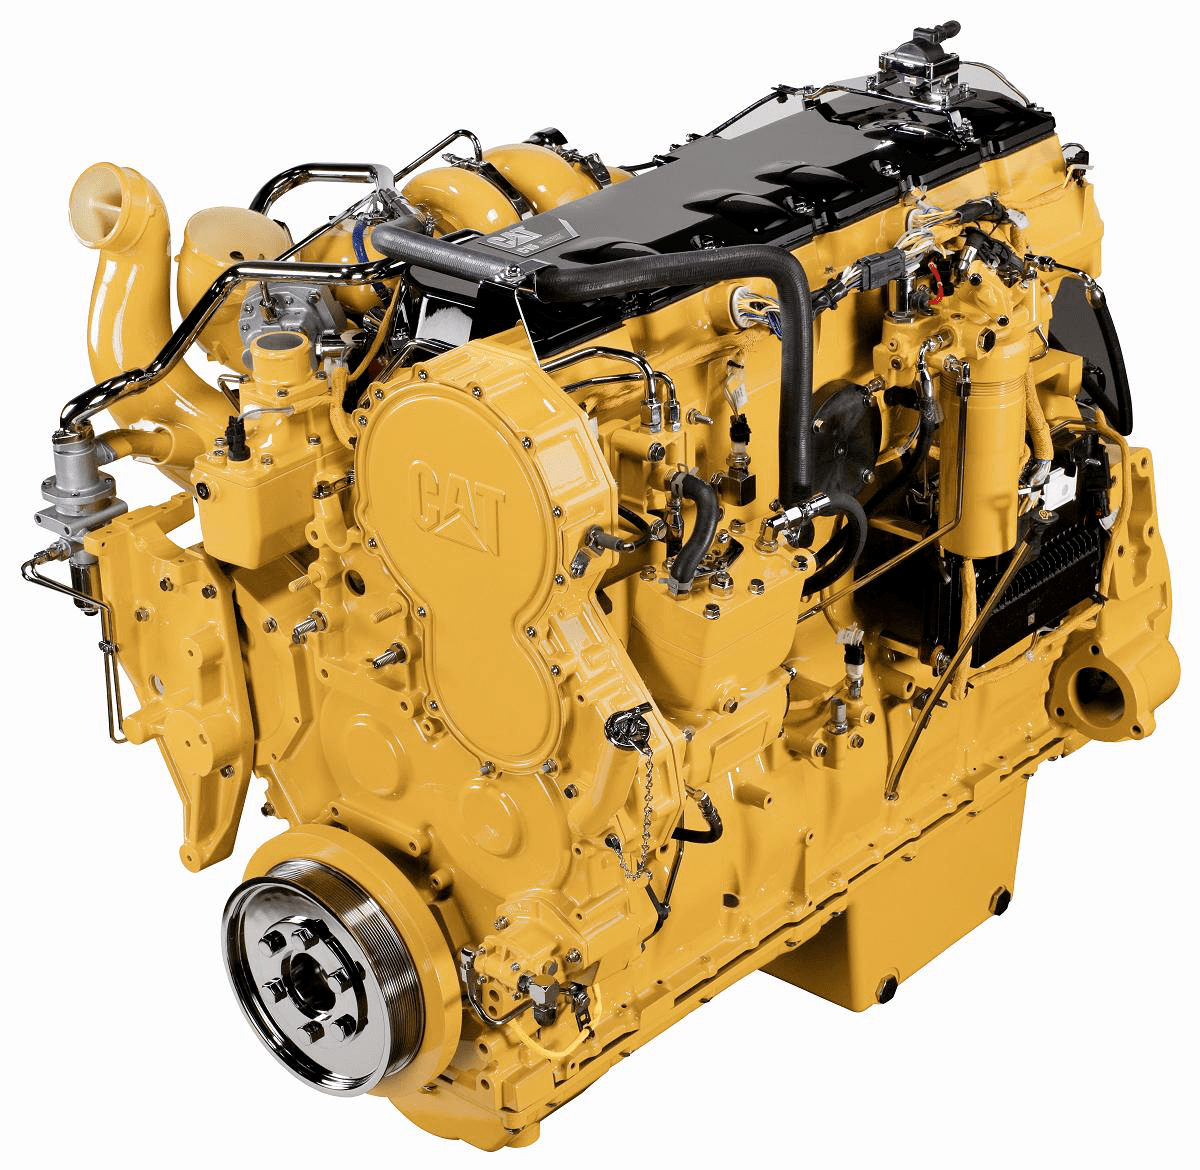 Ascert C15 Engine Diagram Great Design Of Wiring Cat Lawsuits Allege Caterpillar Concealed Defects In 2007 2010 Engines Rh Overdriveonline Com Ecm Truck